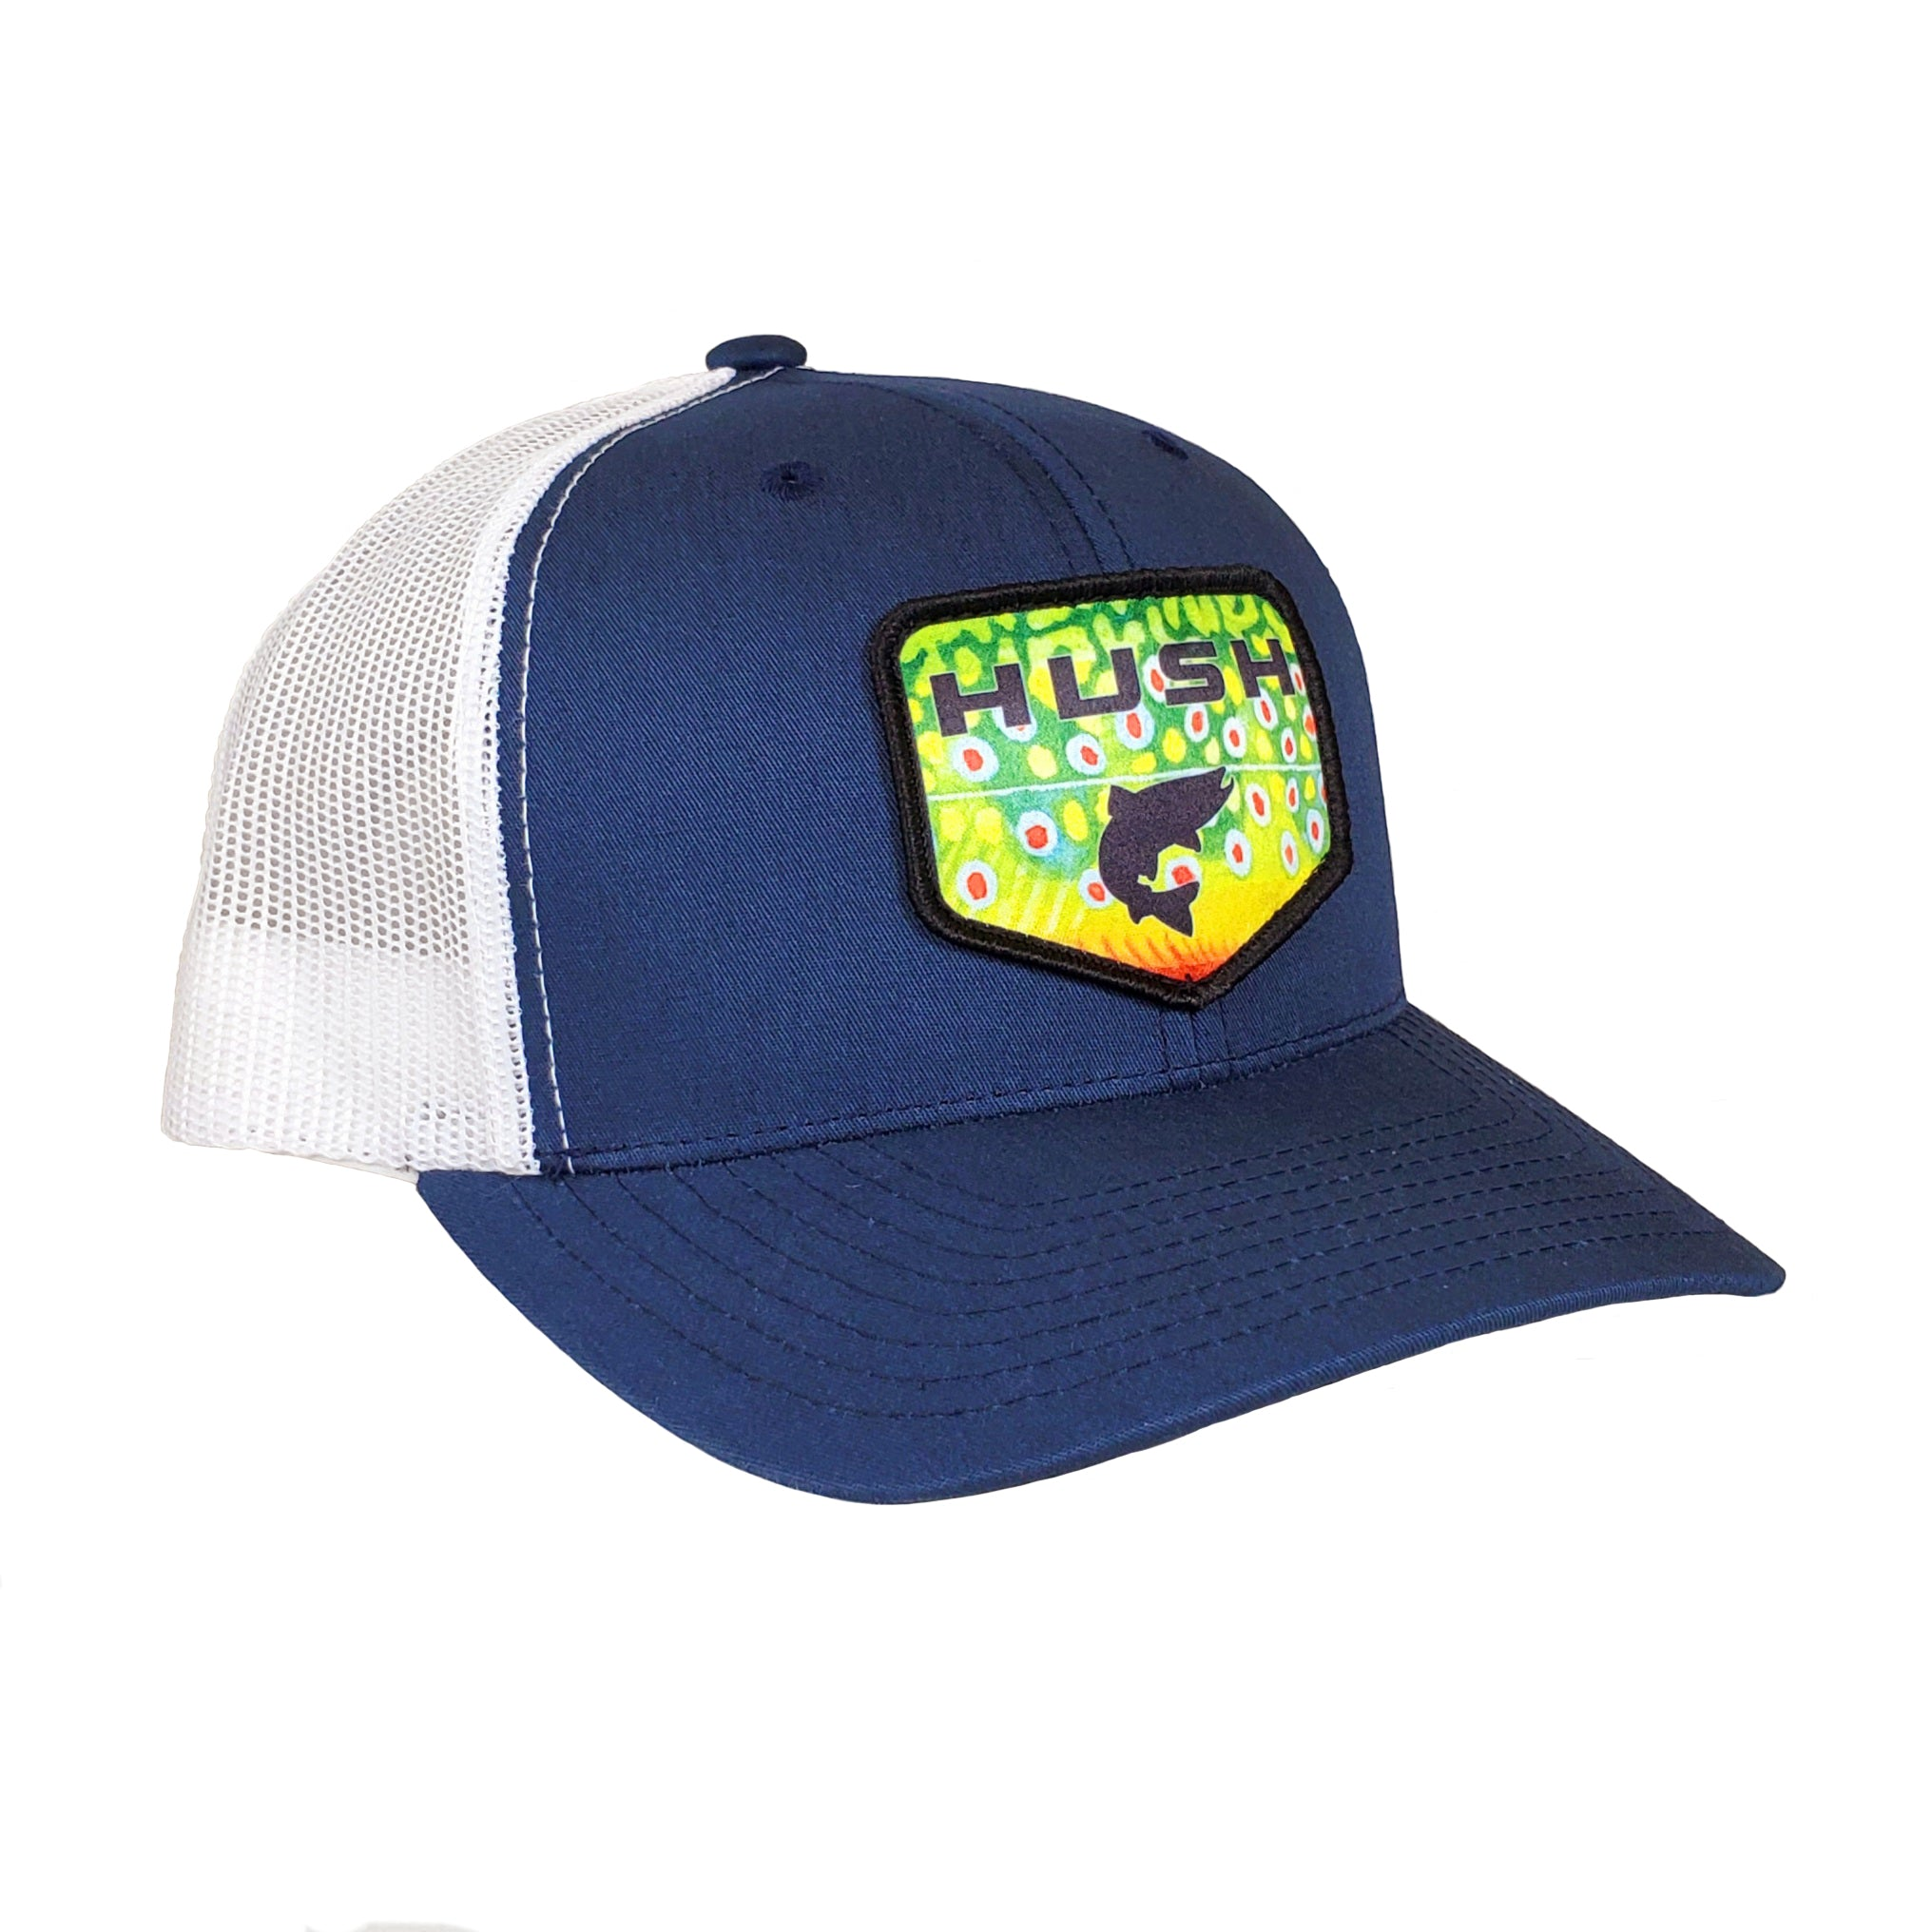 Blue and white uinta brook trout hat